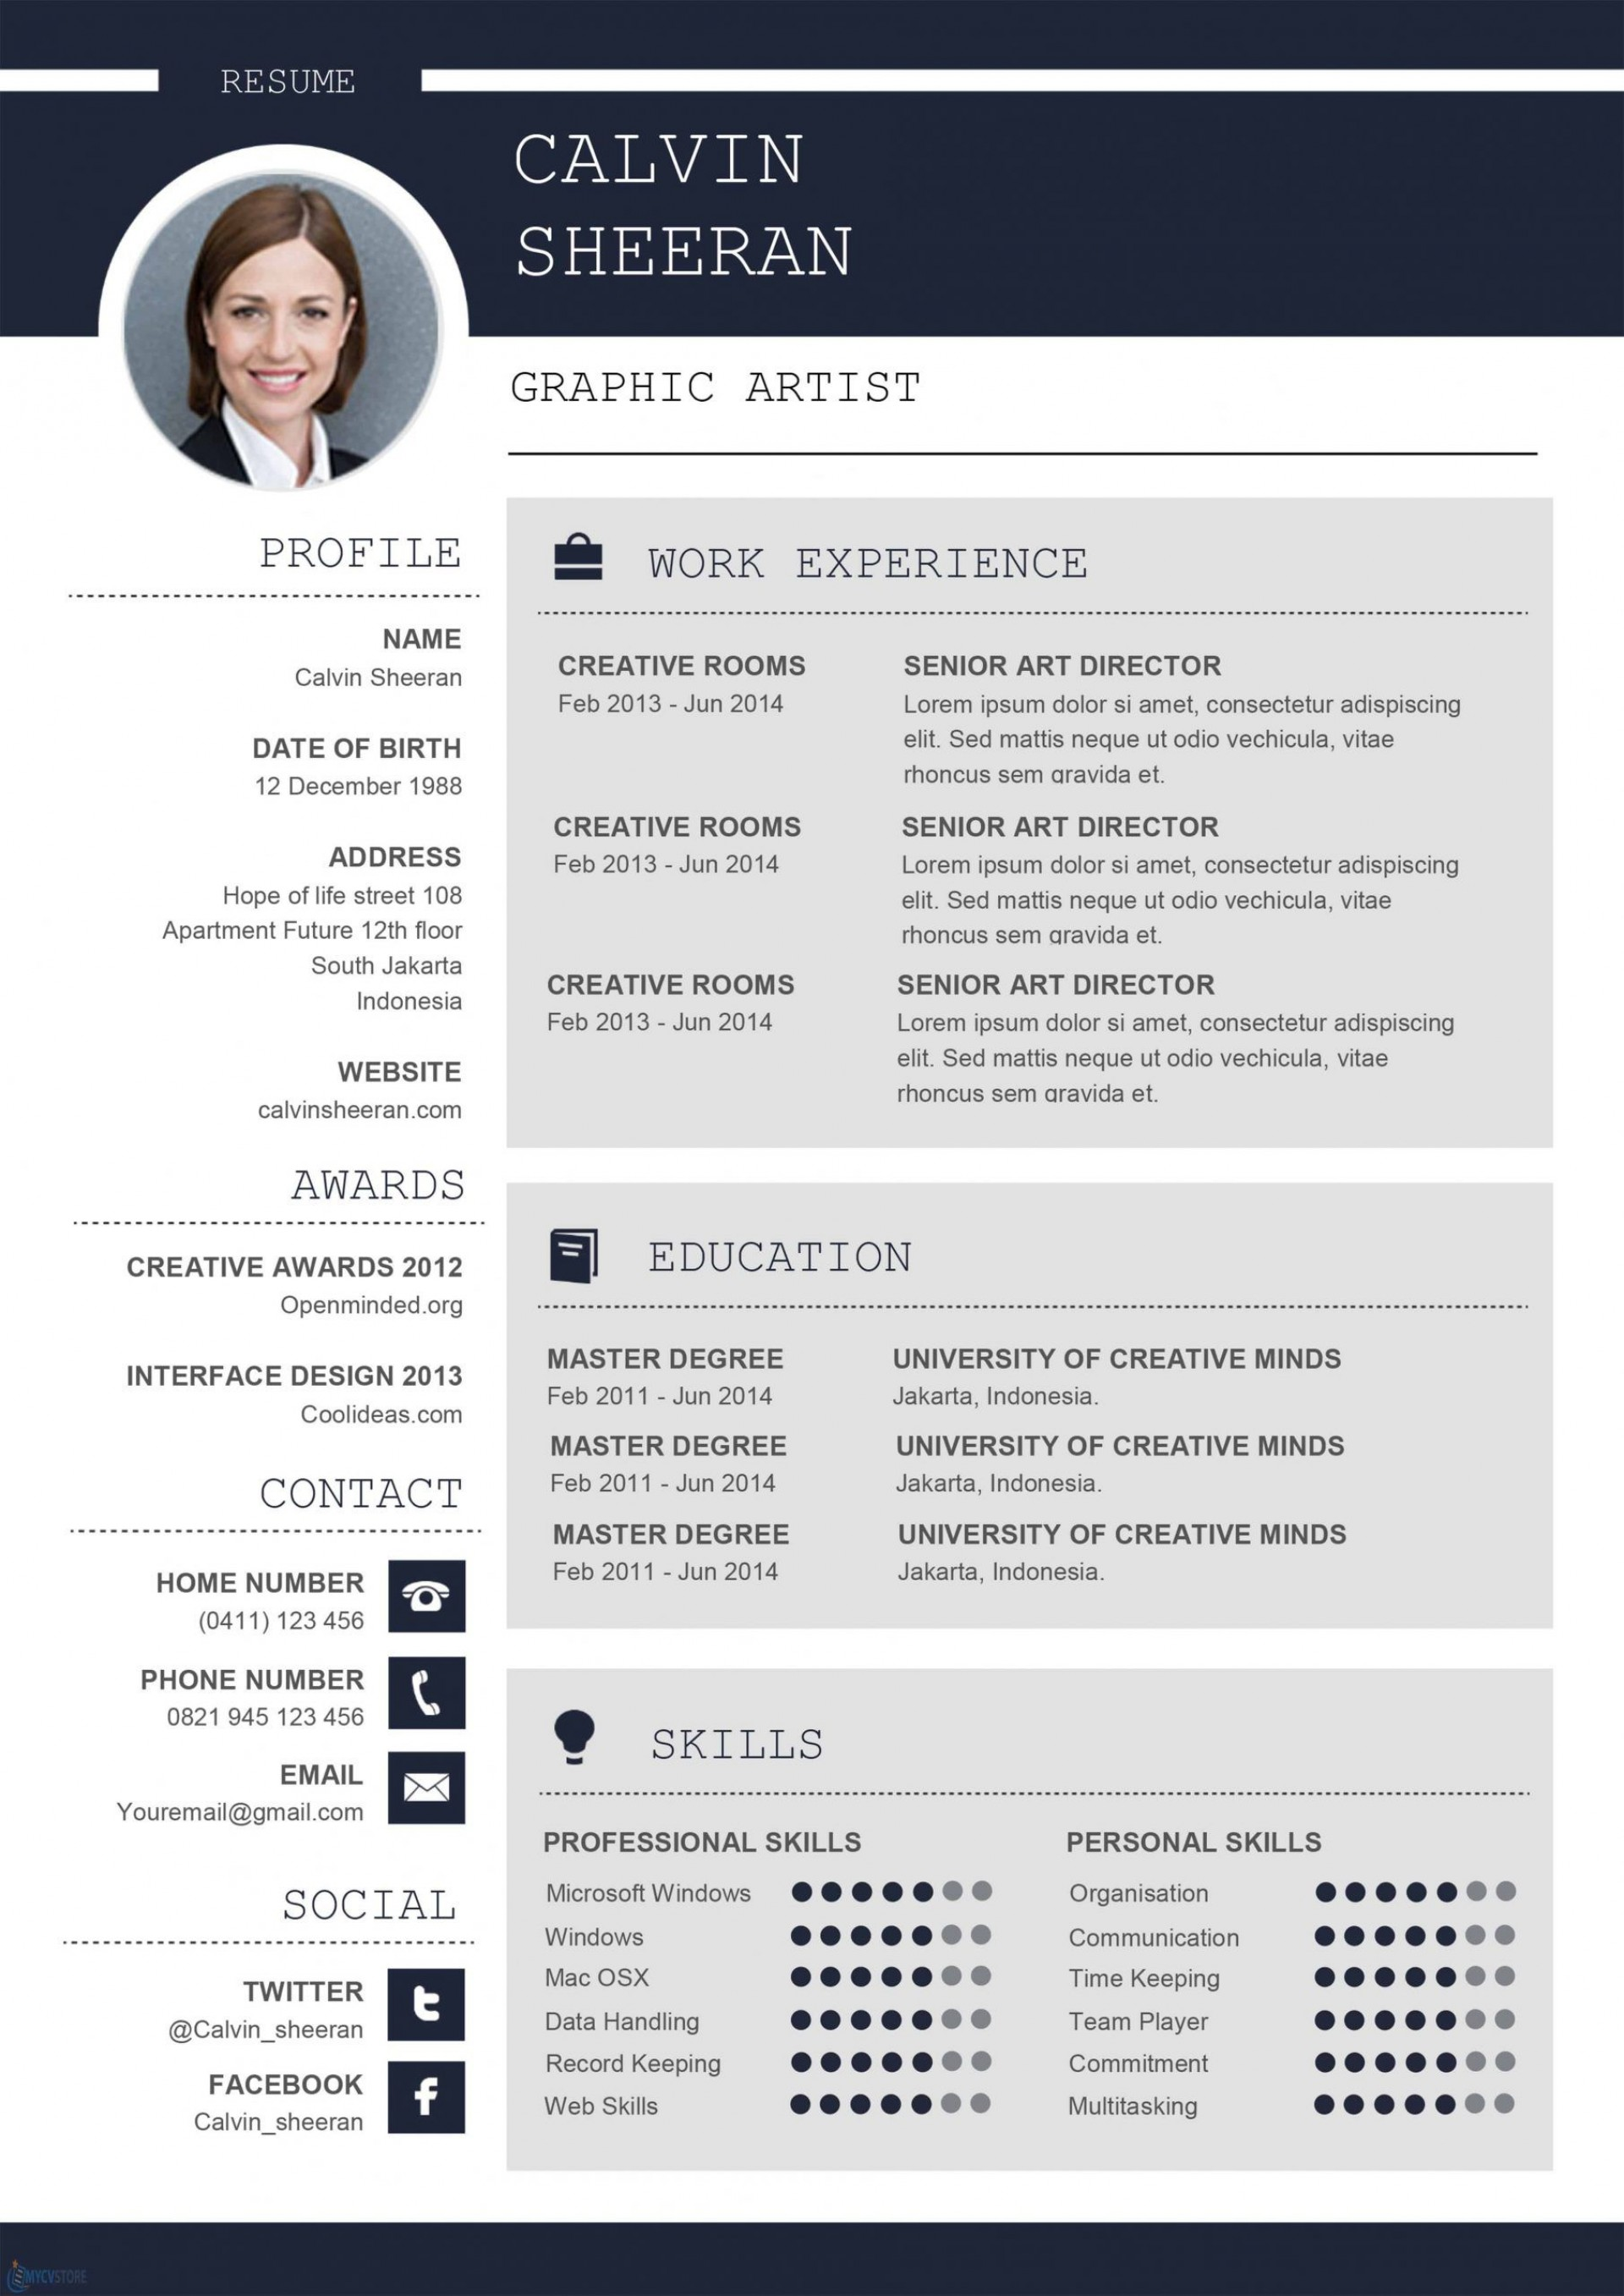 002 Incredible Resume Microsoft Word Template Picture  Cv/resume Design Tutorial With Federal Download1920